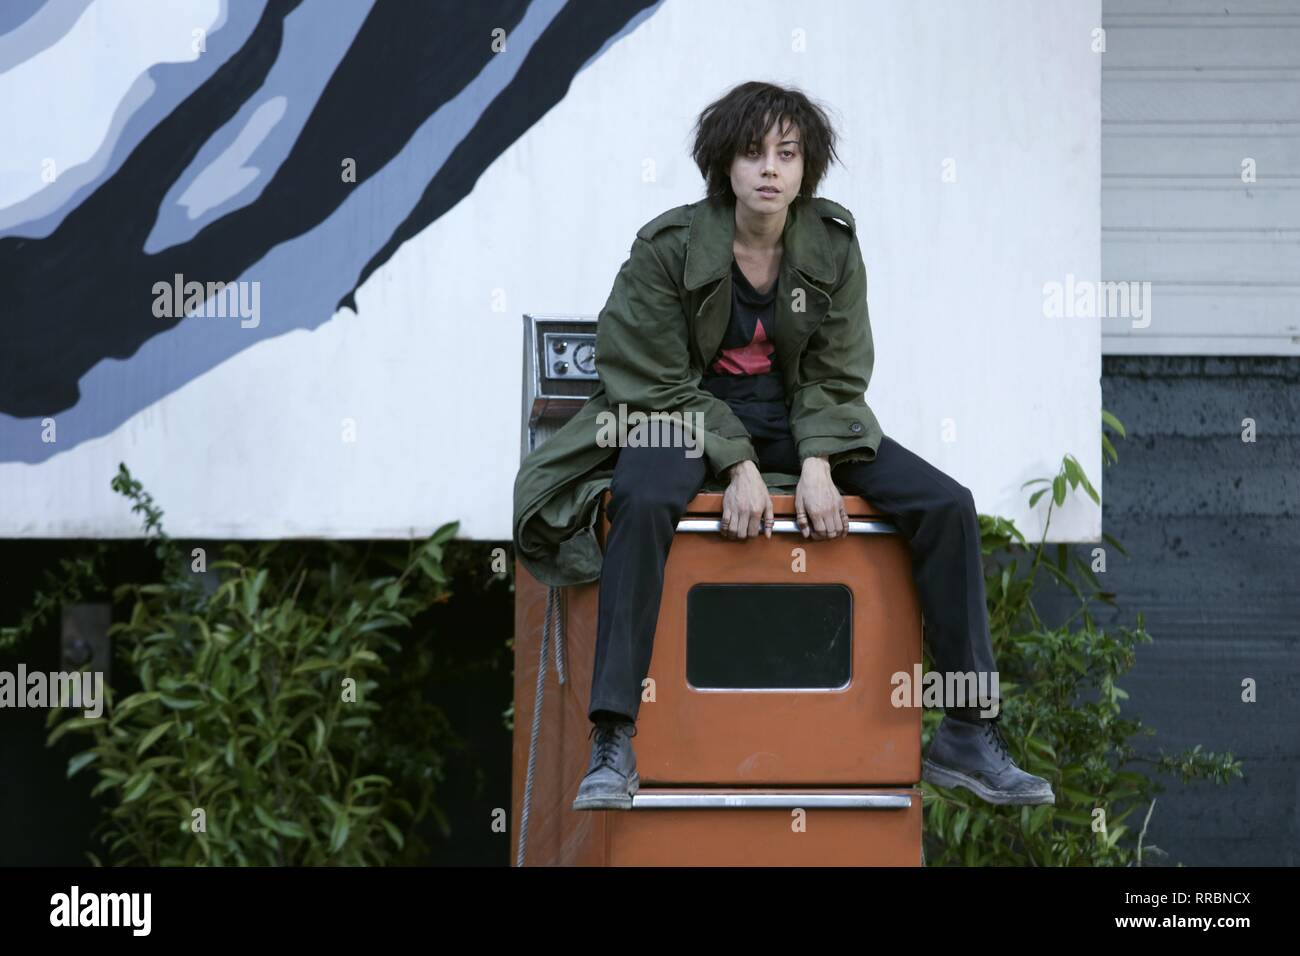 LEGION, AUBREY PLAZA, 2017 - Stock Image